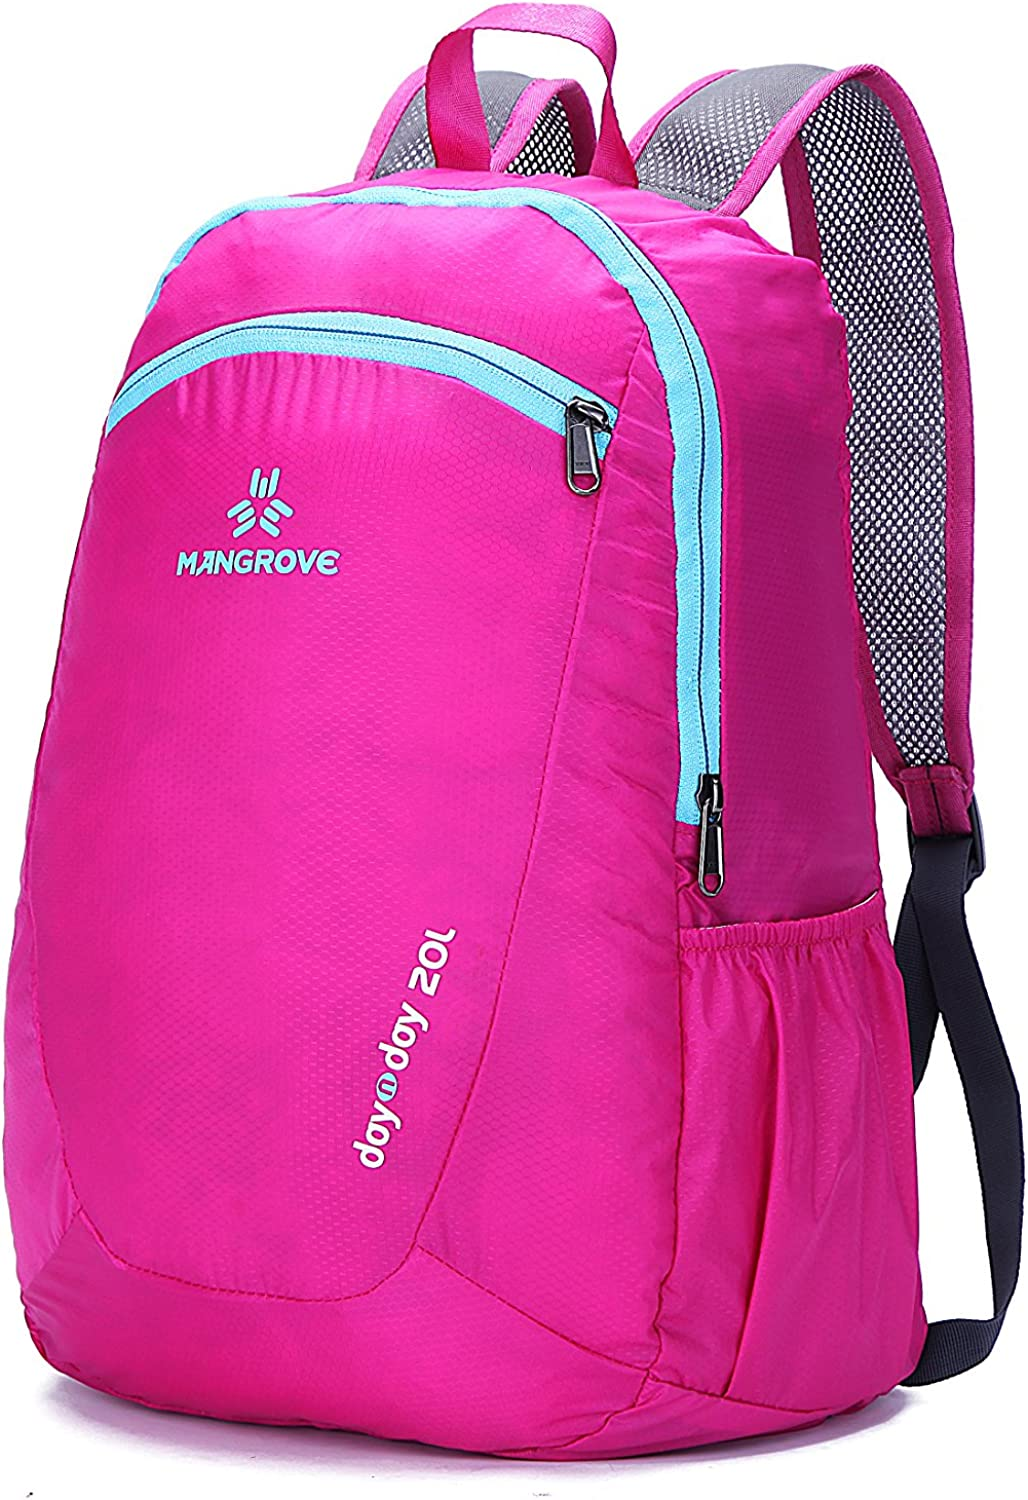 Mangrove 15L 20L Ultra Lightweight Packable Backpack, Hiking Daypack for Camping Outdoor Travel Biking School Traveling